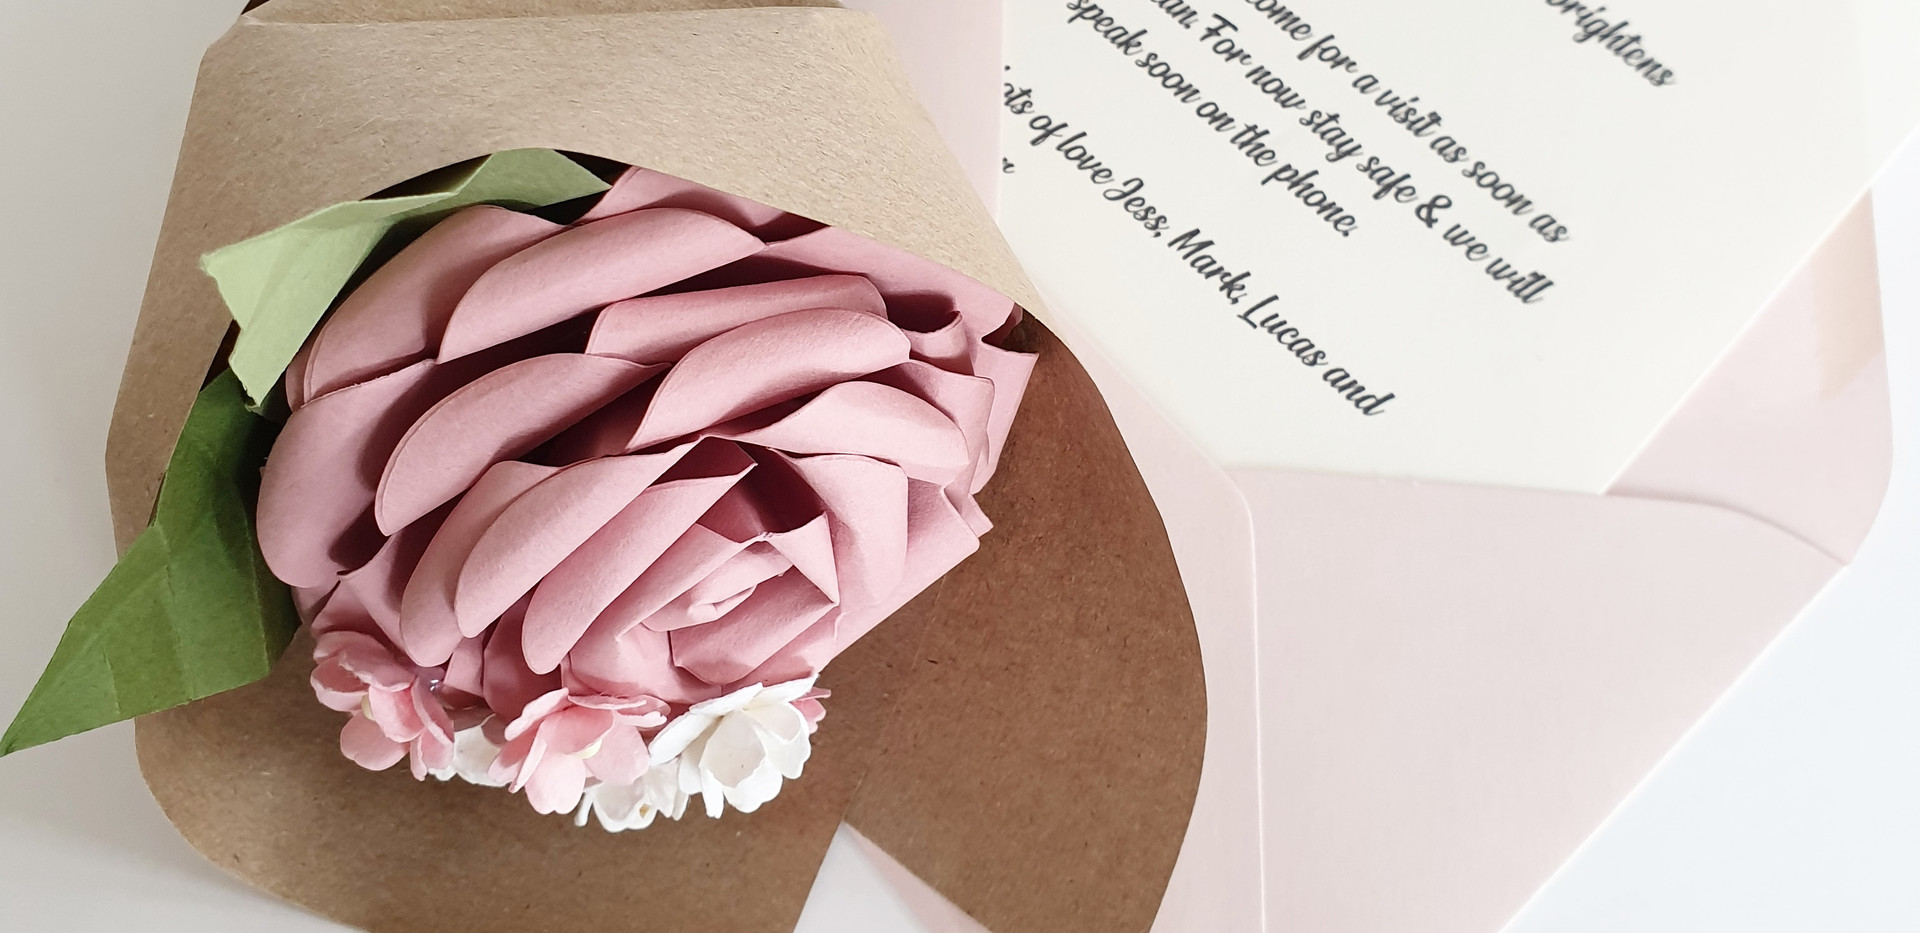 Send Paper Flowers during COVID